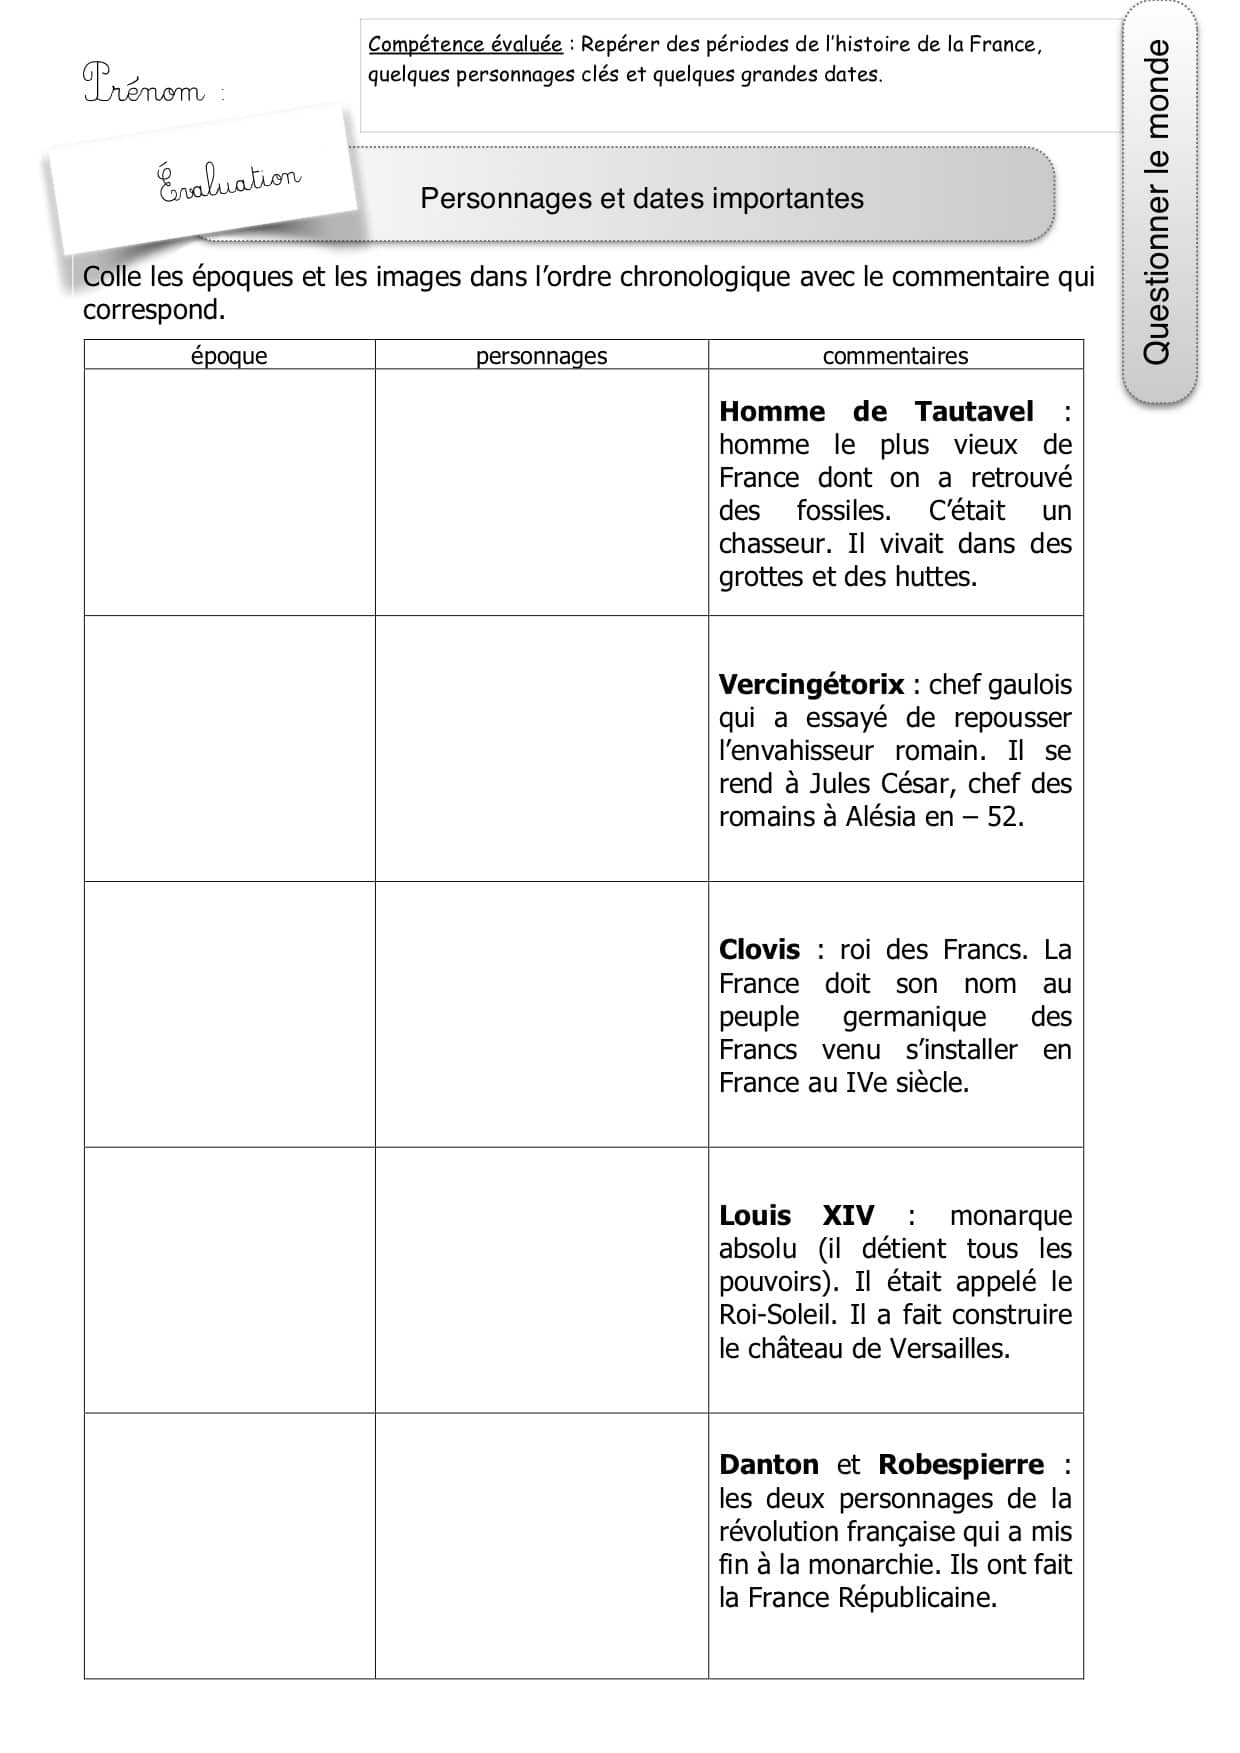 Evaluation Calendrier Ce1.Evaluation Ce2 Personnages Et Dates Importants